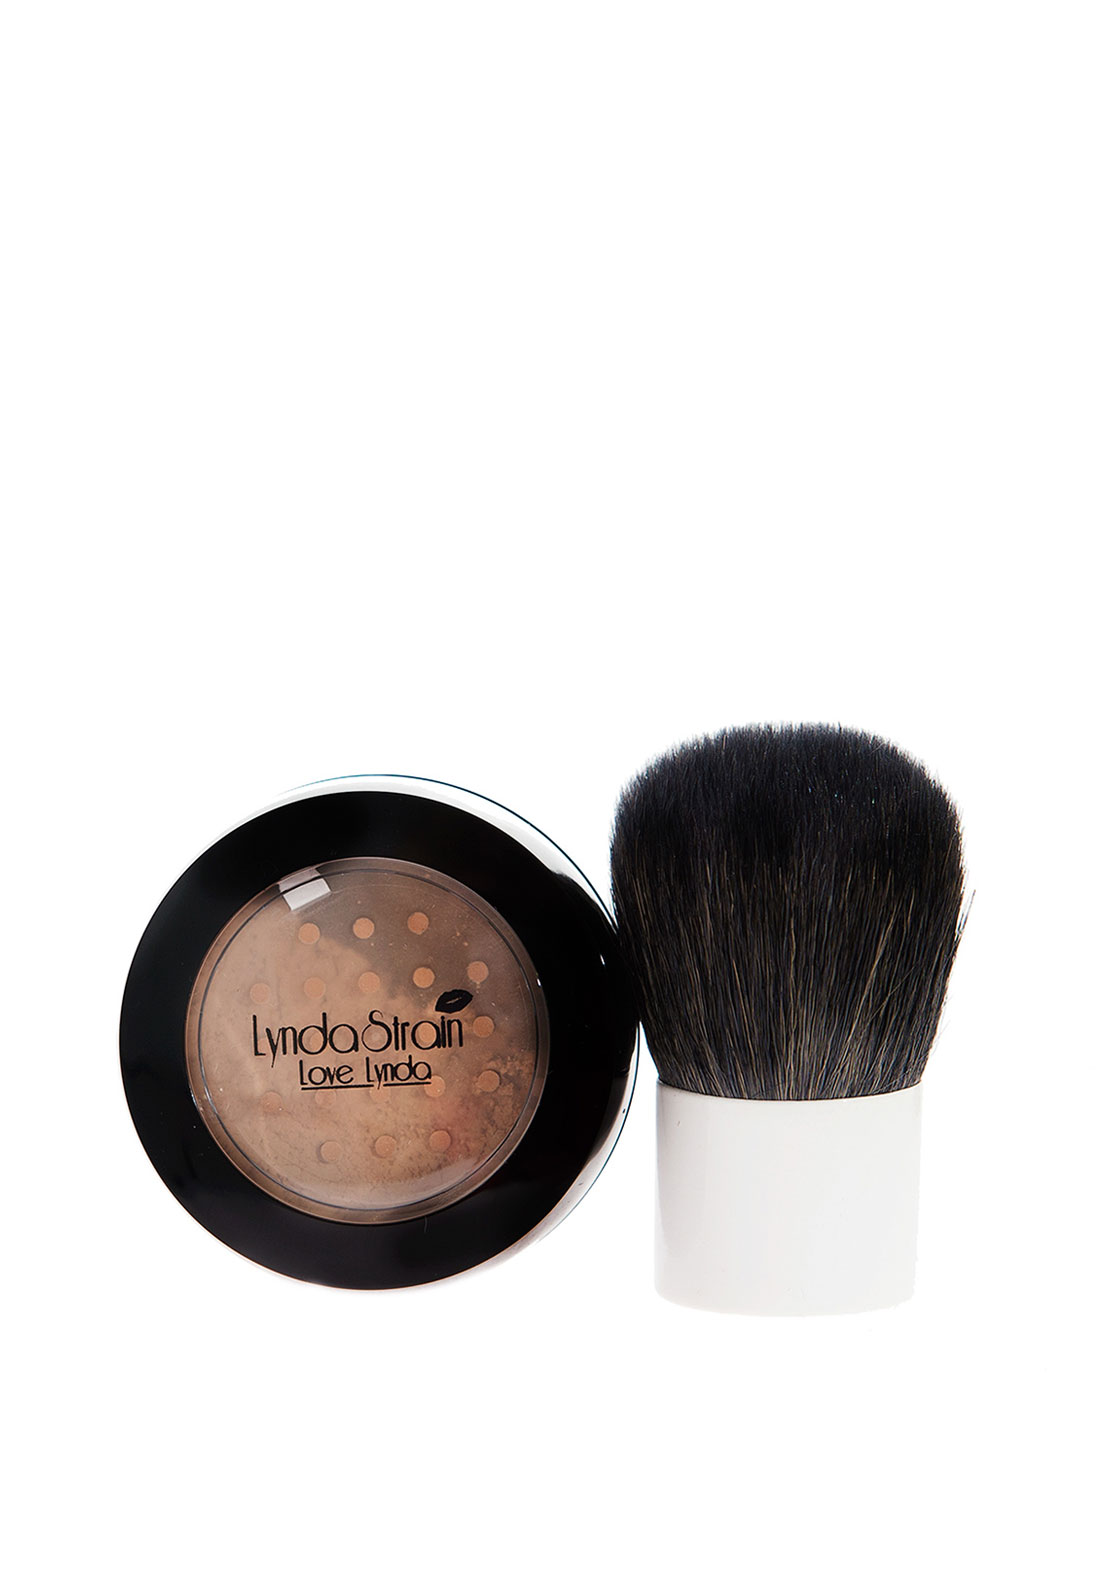 Lynda Strain Love Lynda Mineral Loose Foundation, Warm 5